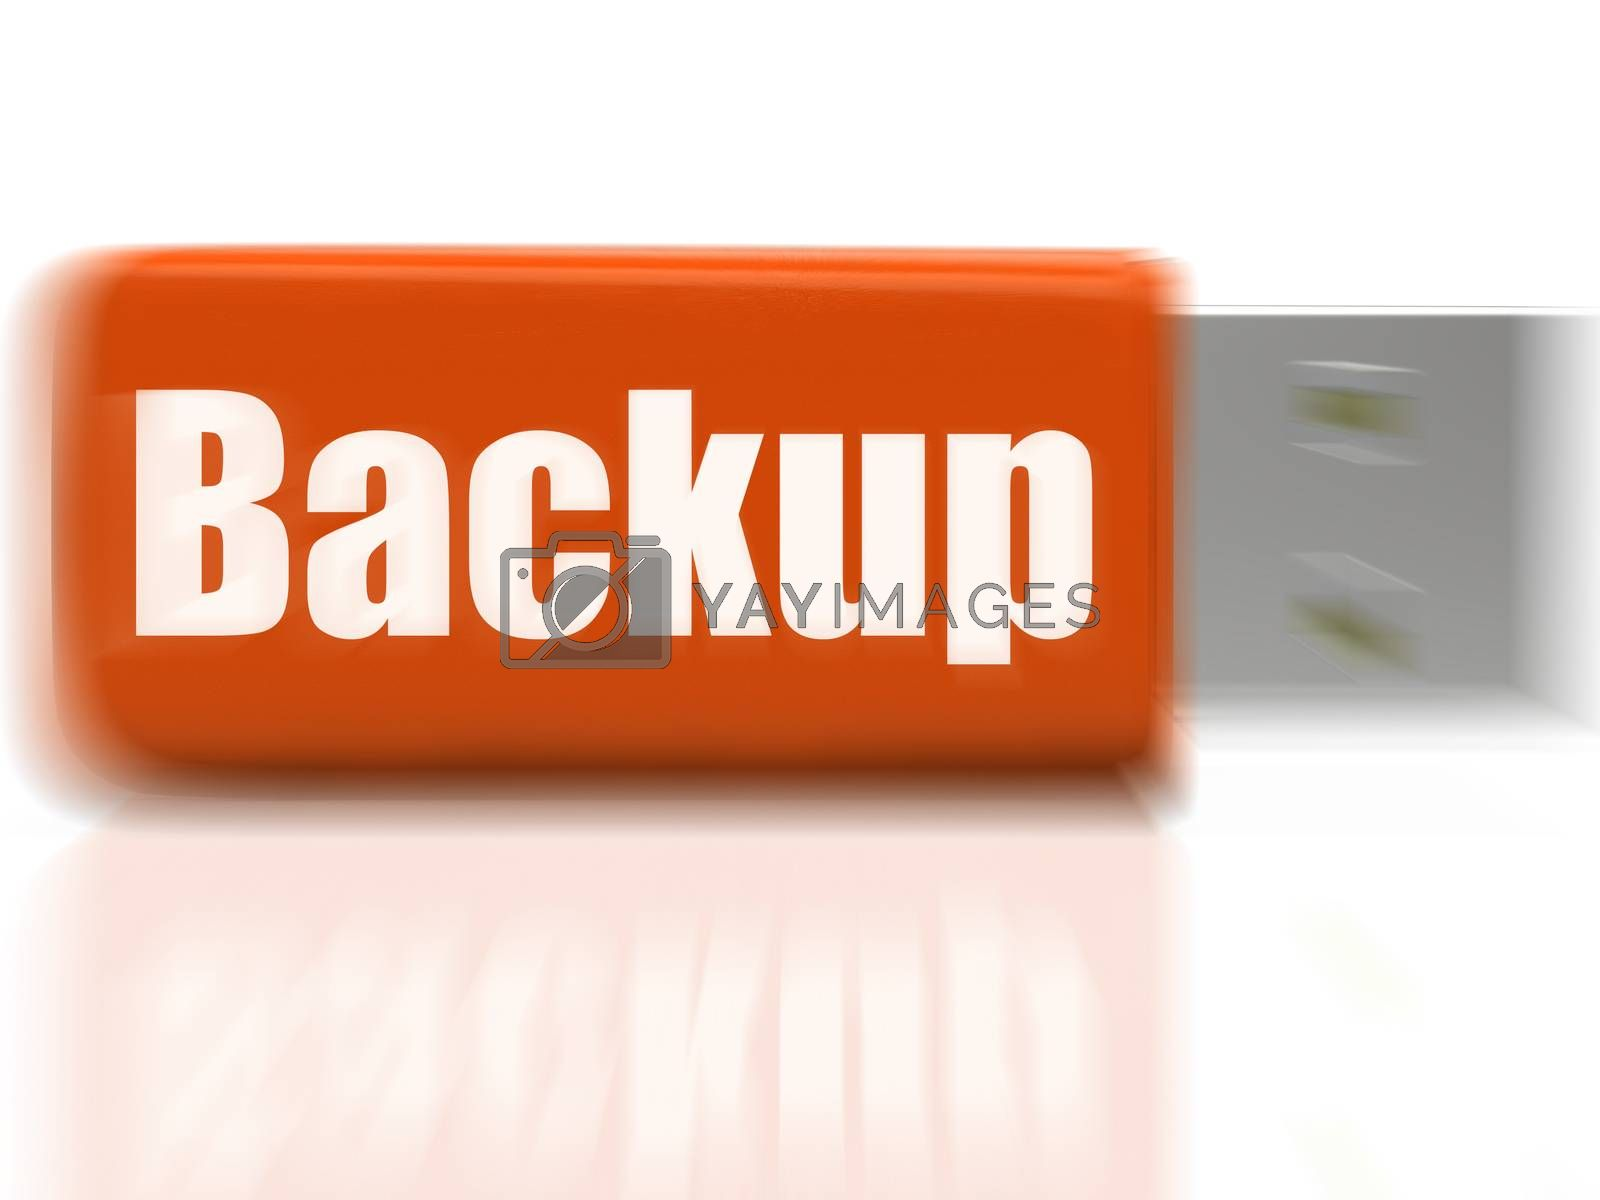 Backup USB drive Shows Data Storage Or File Transfer by stuartmiles